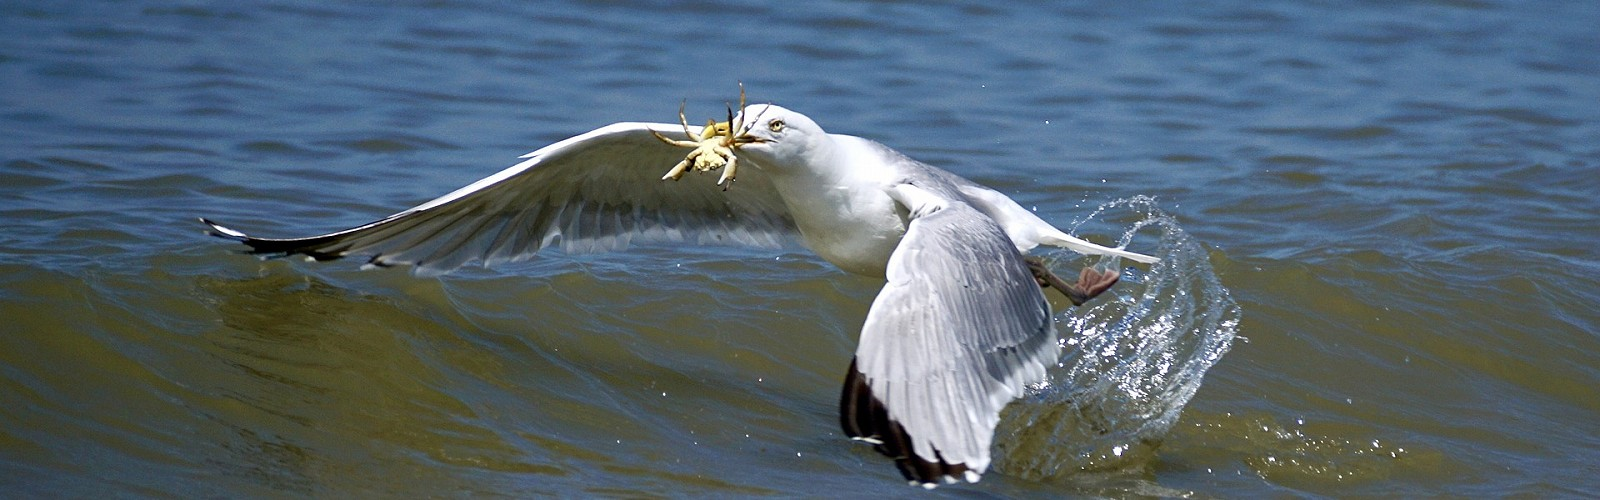 seagull skimming the water with a crab in its beak (image: Susanne Jutzeler / Pixabay)